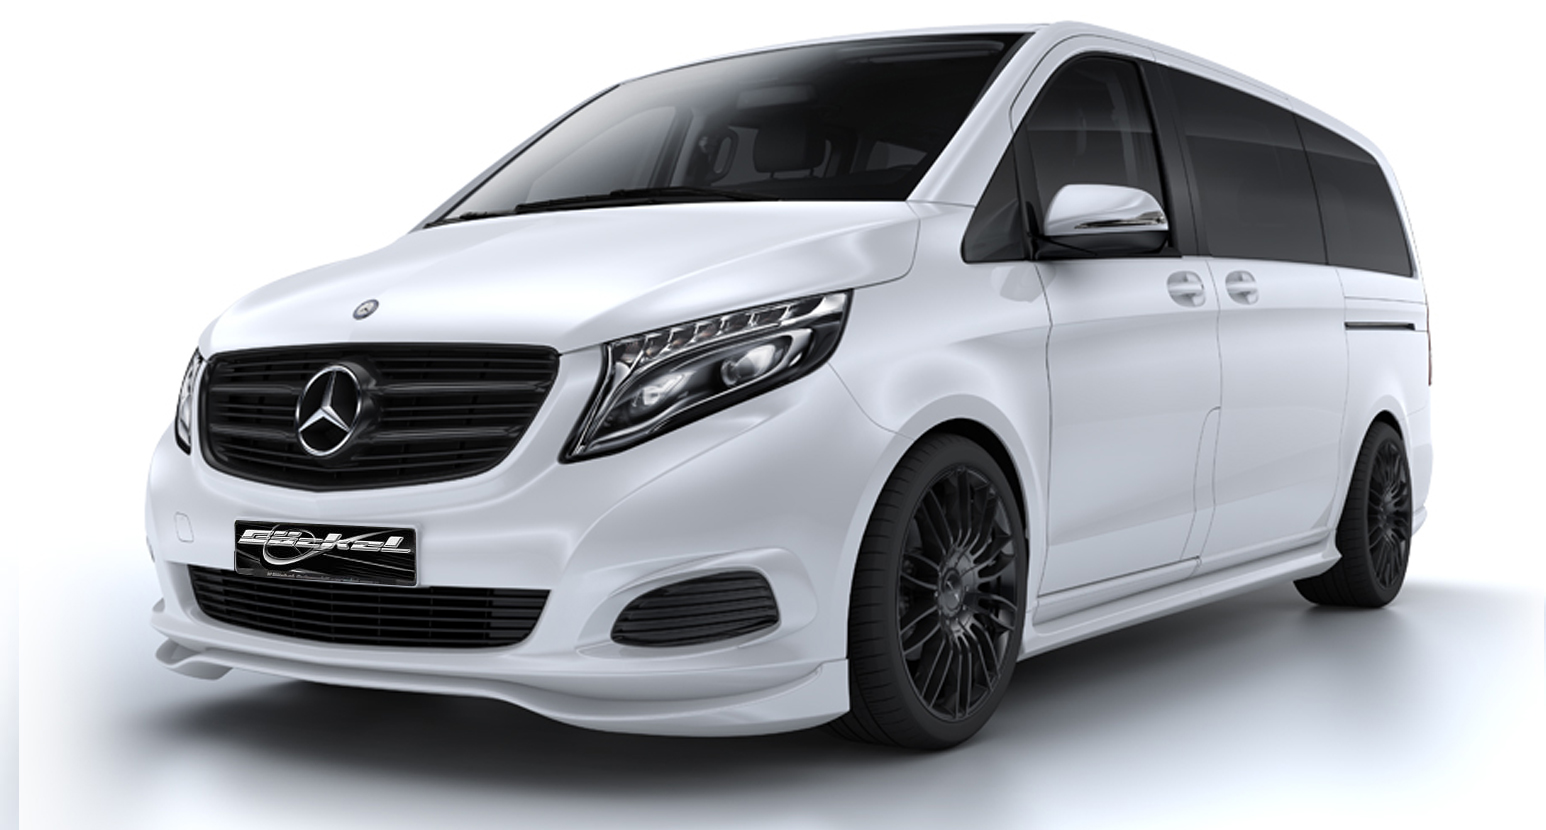 mercedes tuning v klasse vito w447 mercedes styling v klasse mercedes benz tuning vito. Black Bedroom Furniture Sets. Home Design Ideas